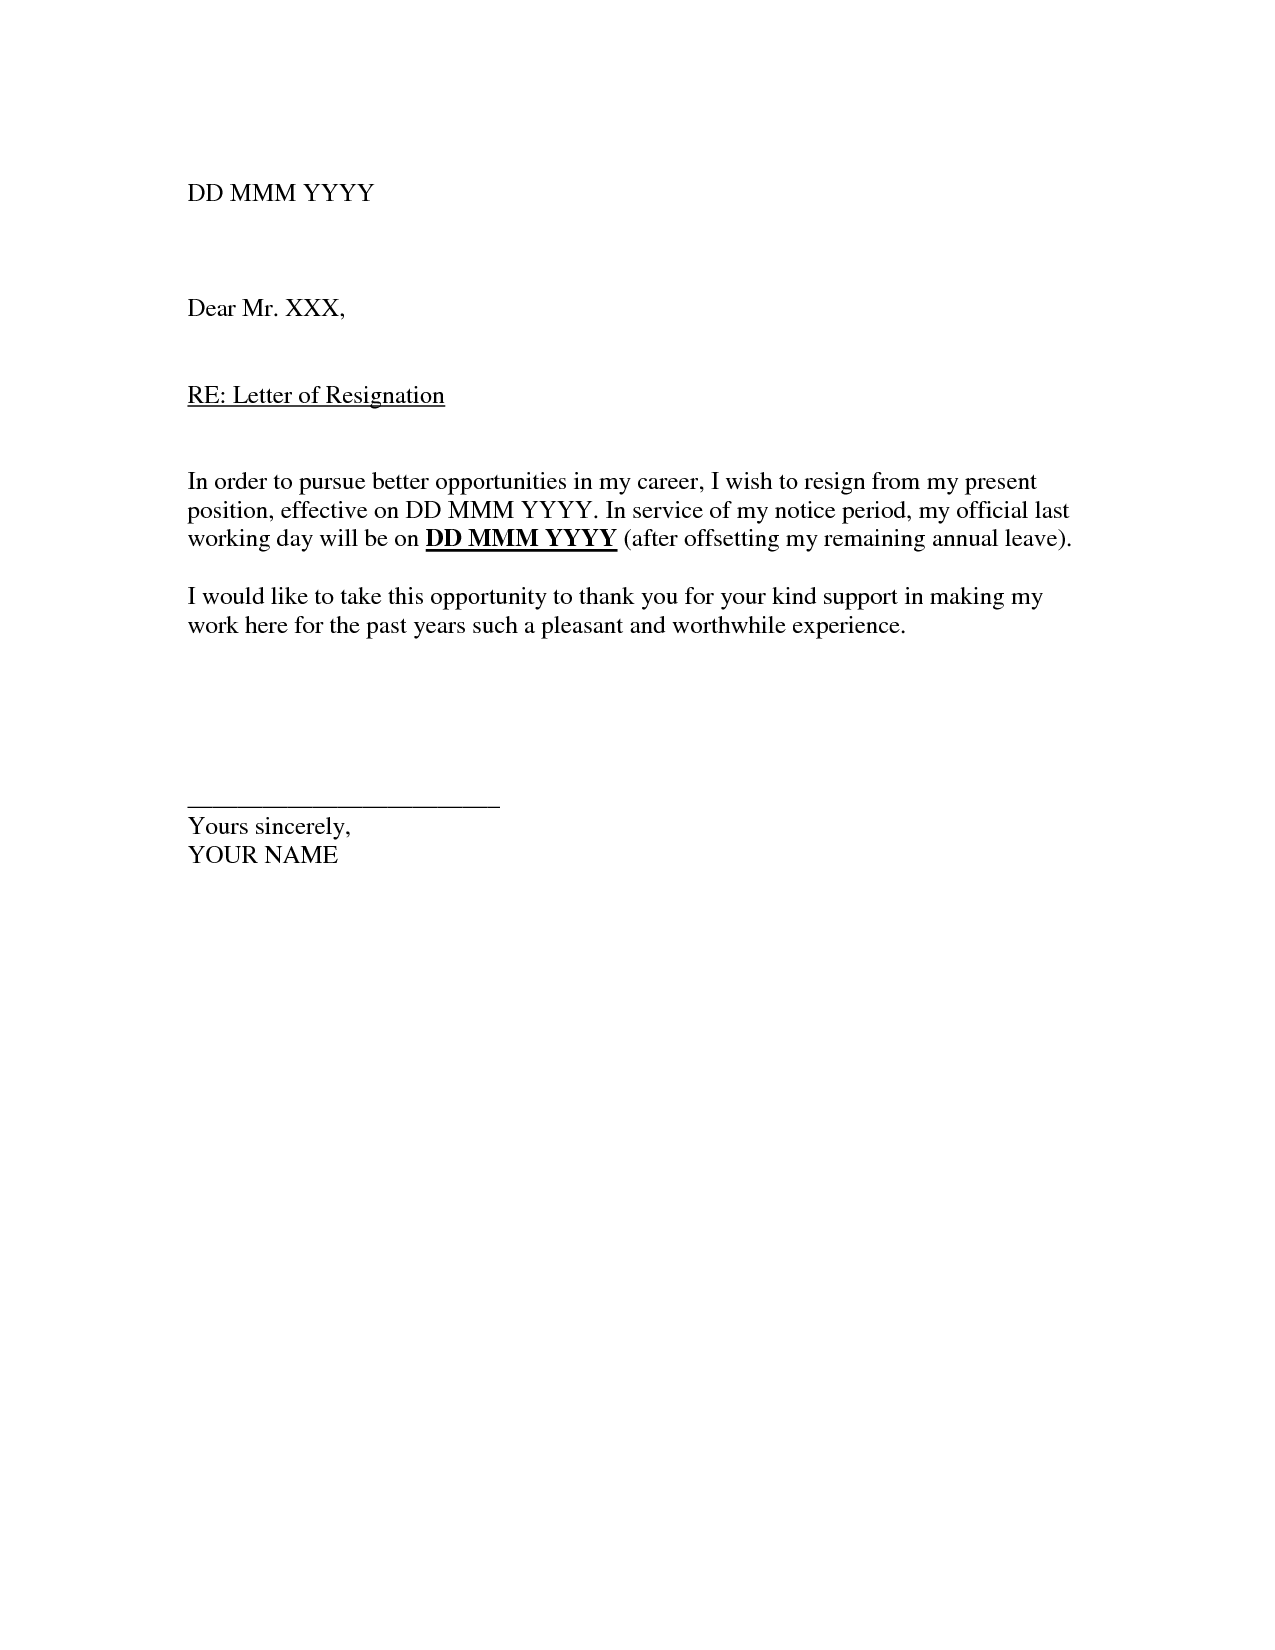 quitting letter template